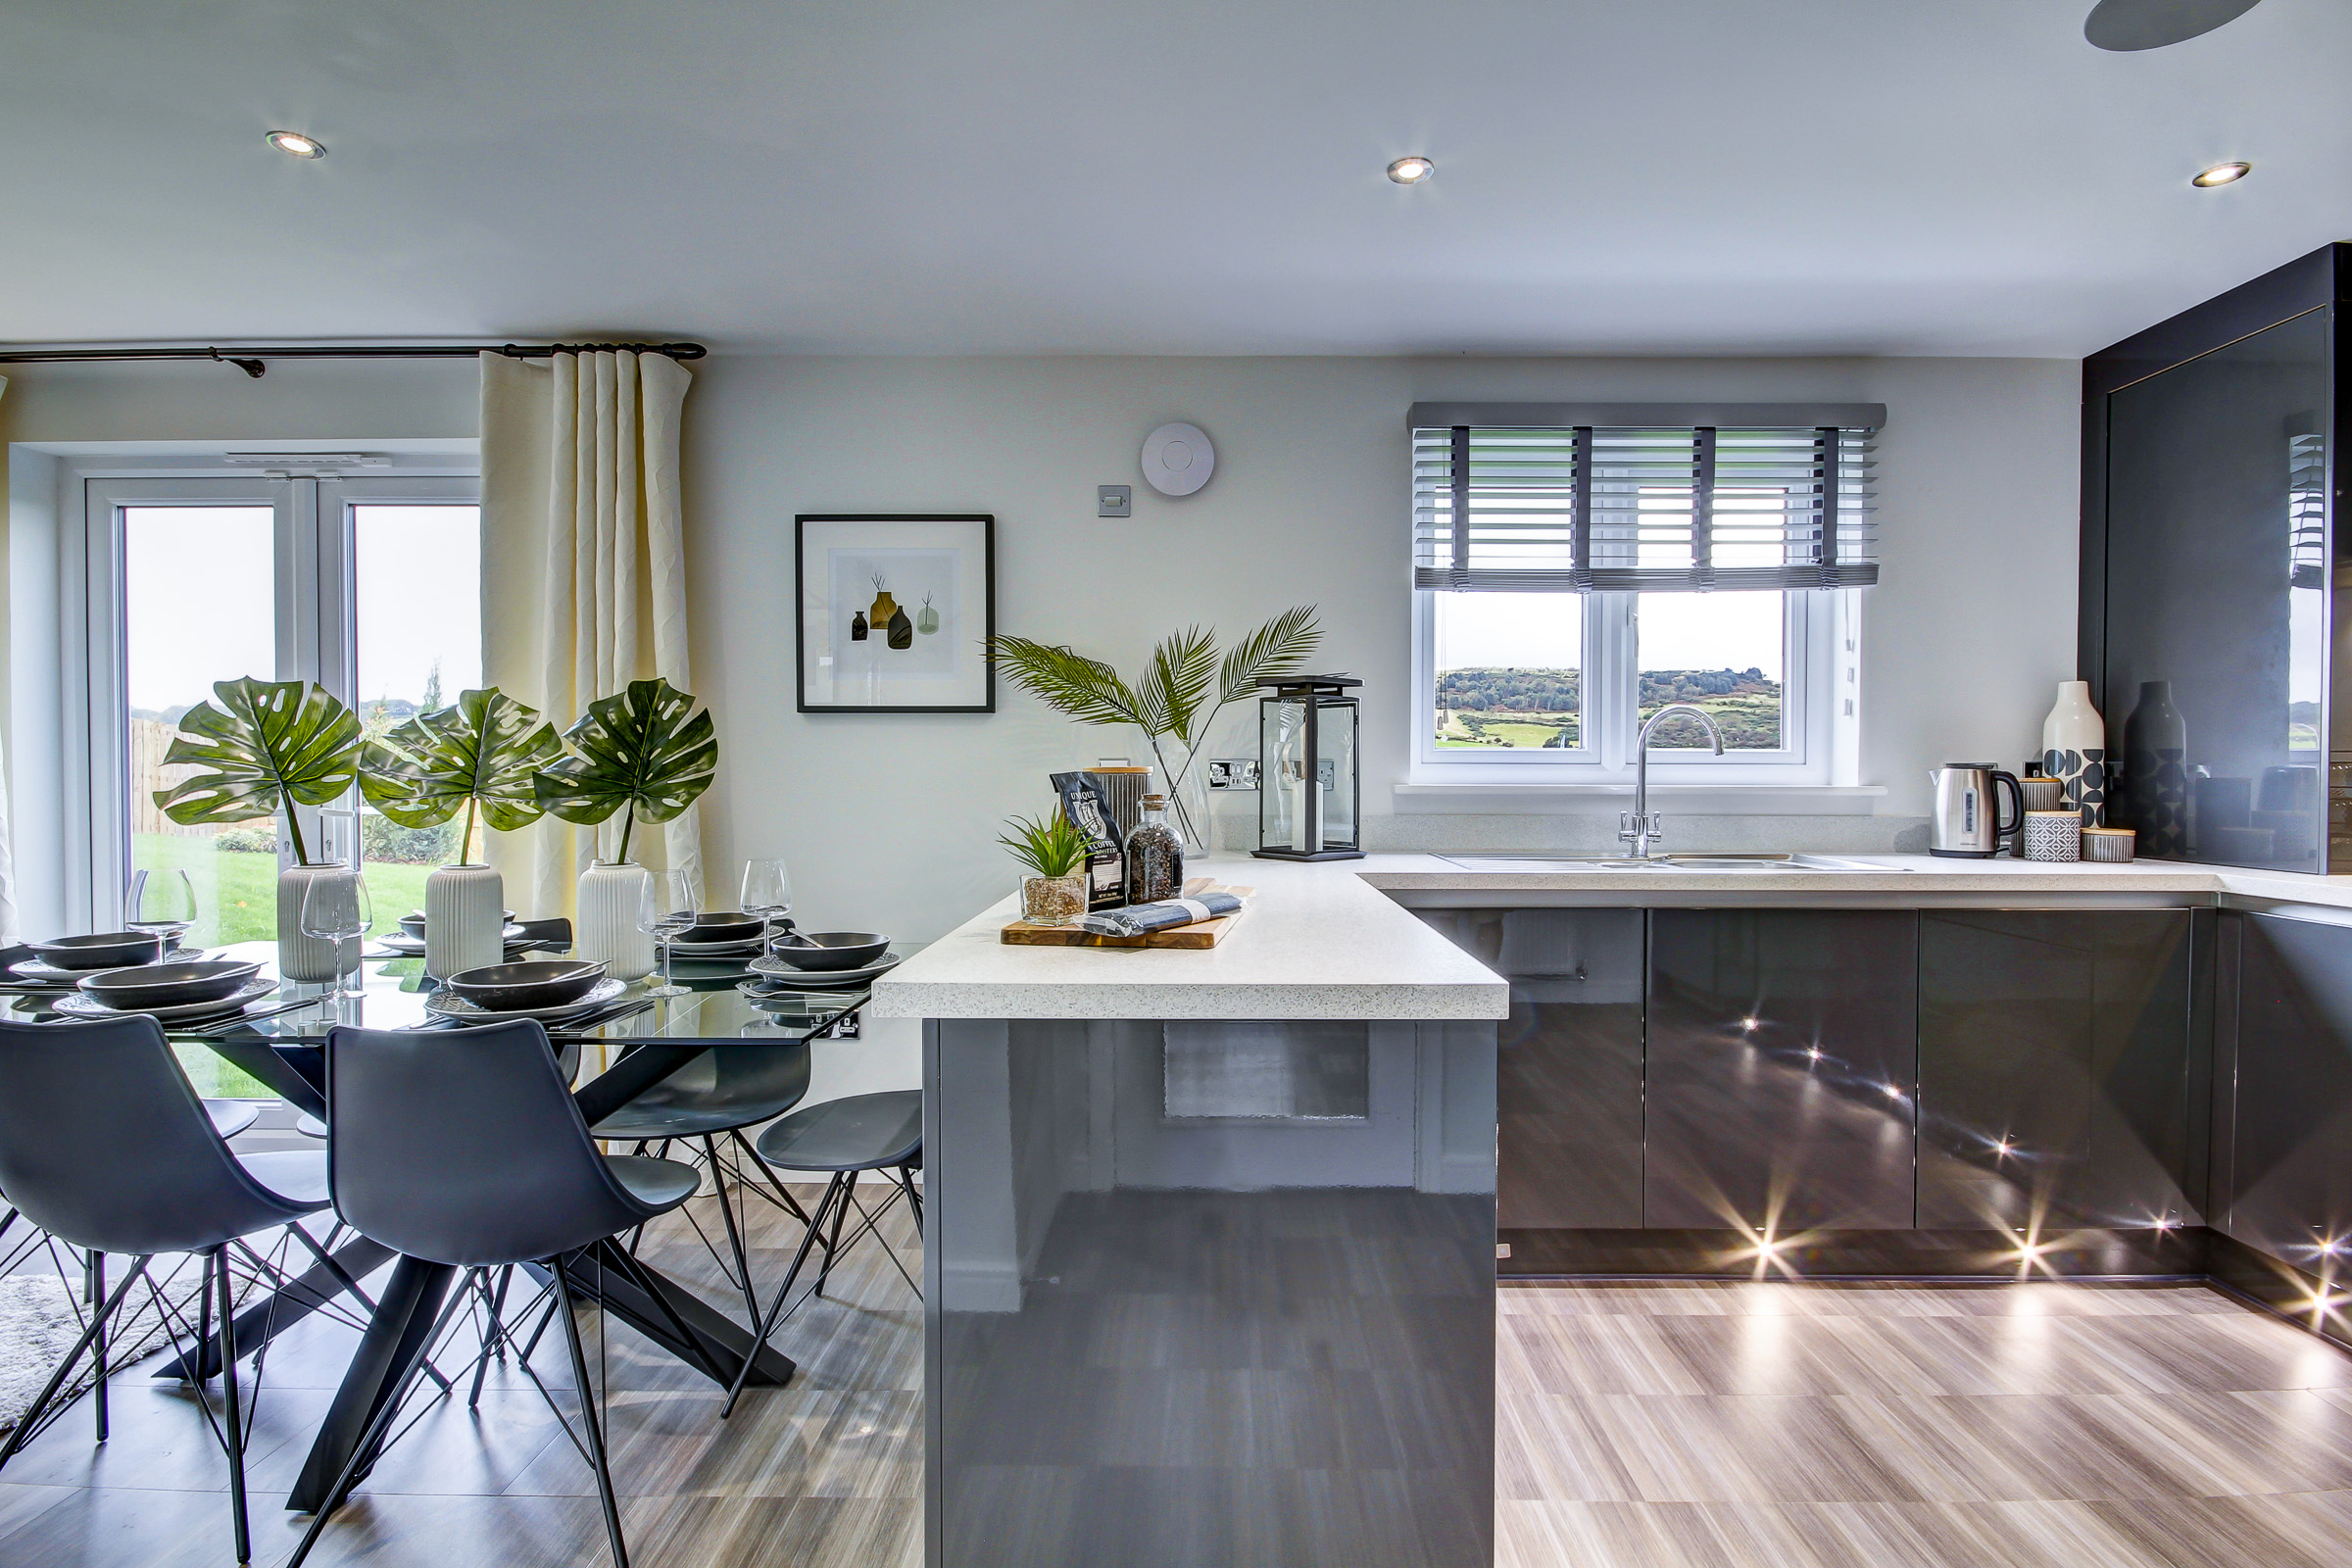 TWWS Kirkton View - Drummond Kitchen 2